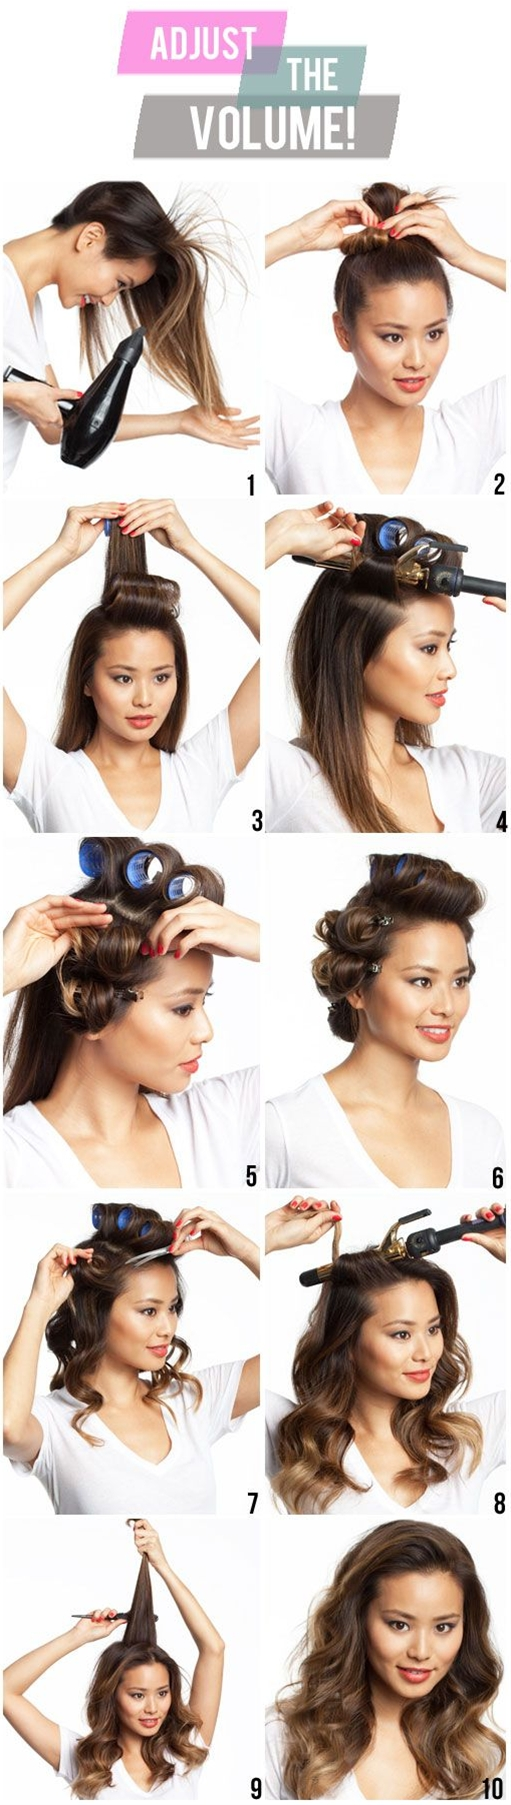 - 1 Add volumizer to your root. Blow dry upside down  